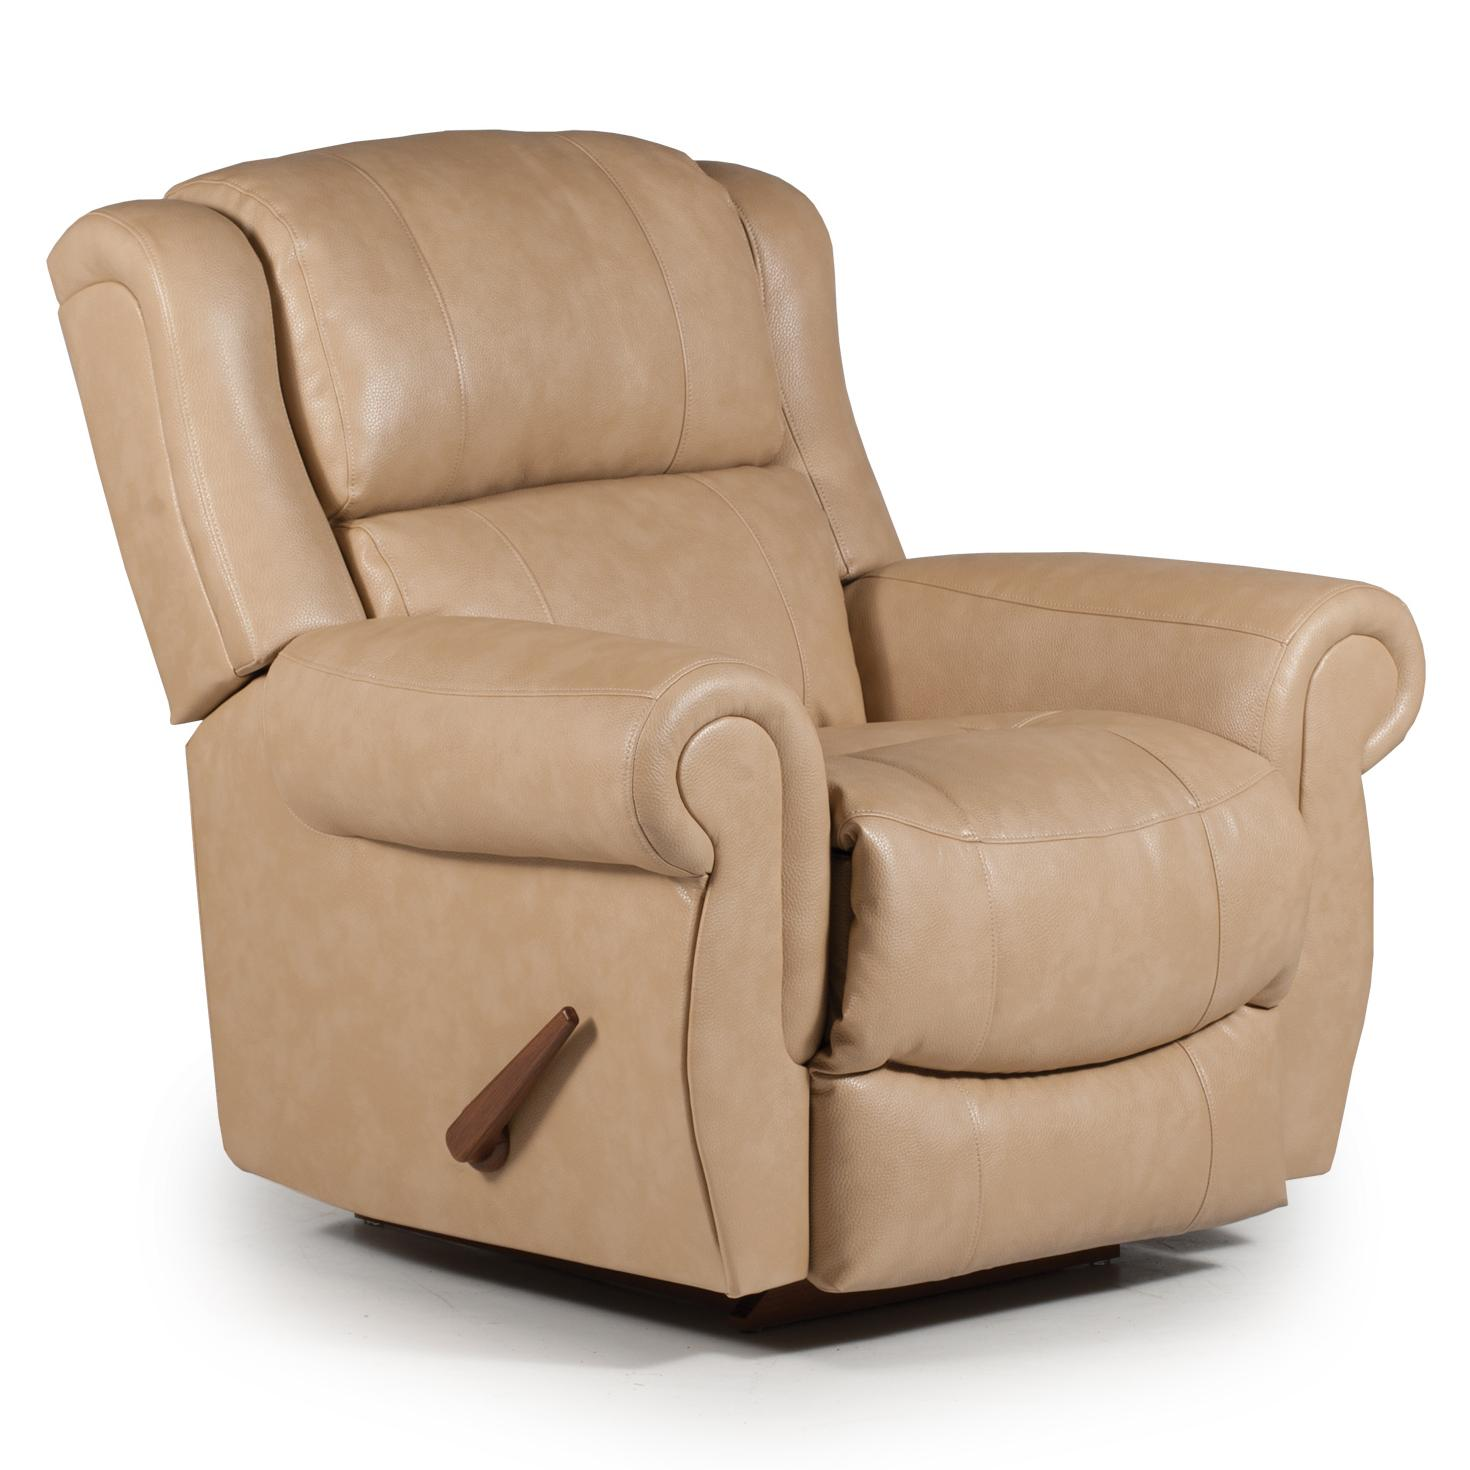 Best home furnishings recliners medium terrill space for Chair recliner